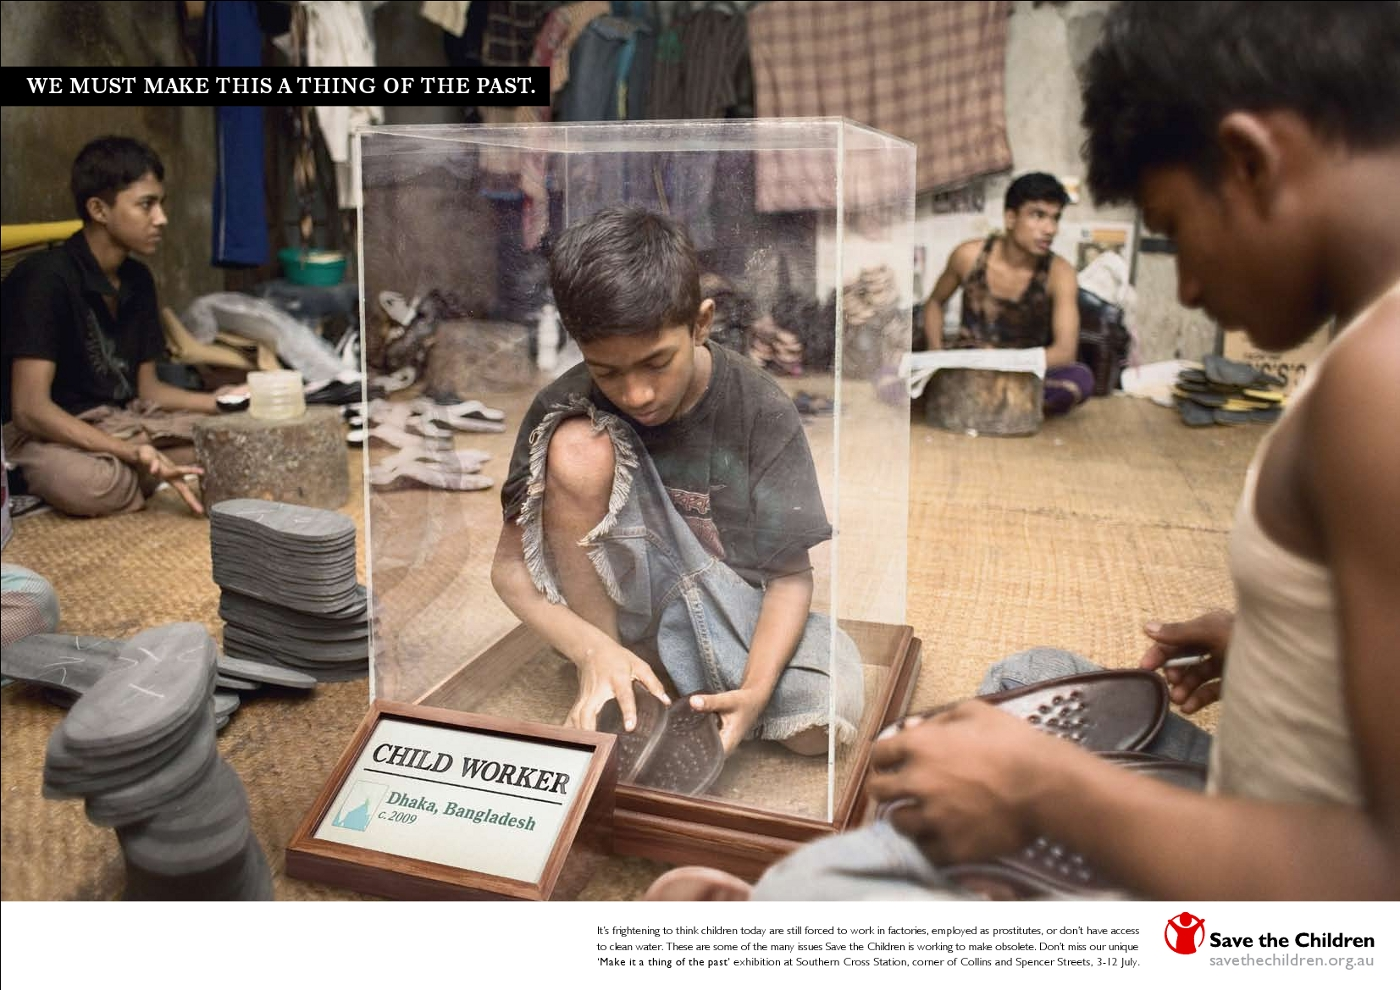 Save the children makes injustice thing of the past